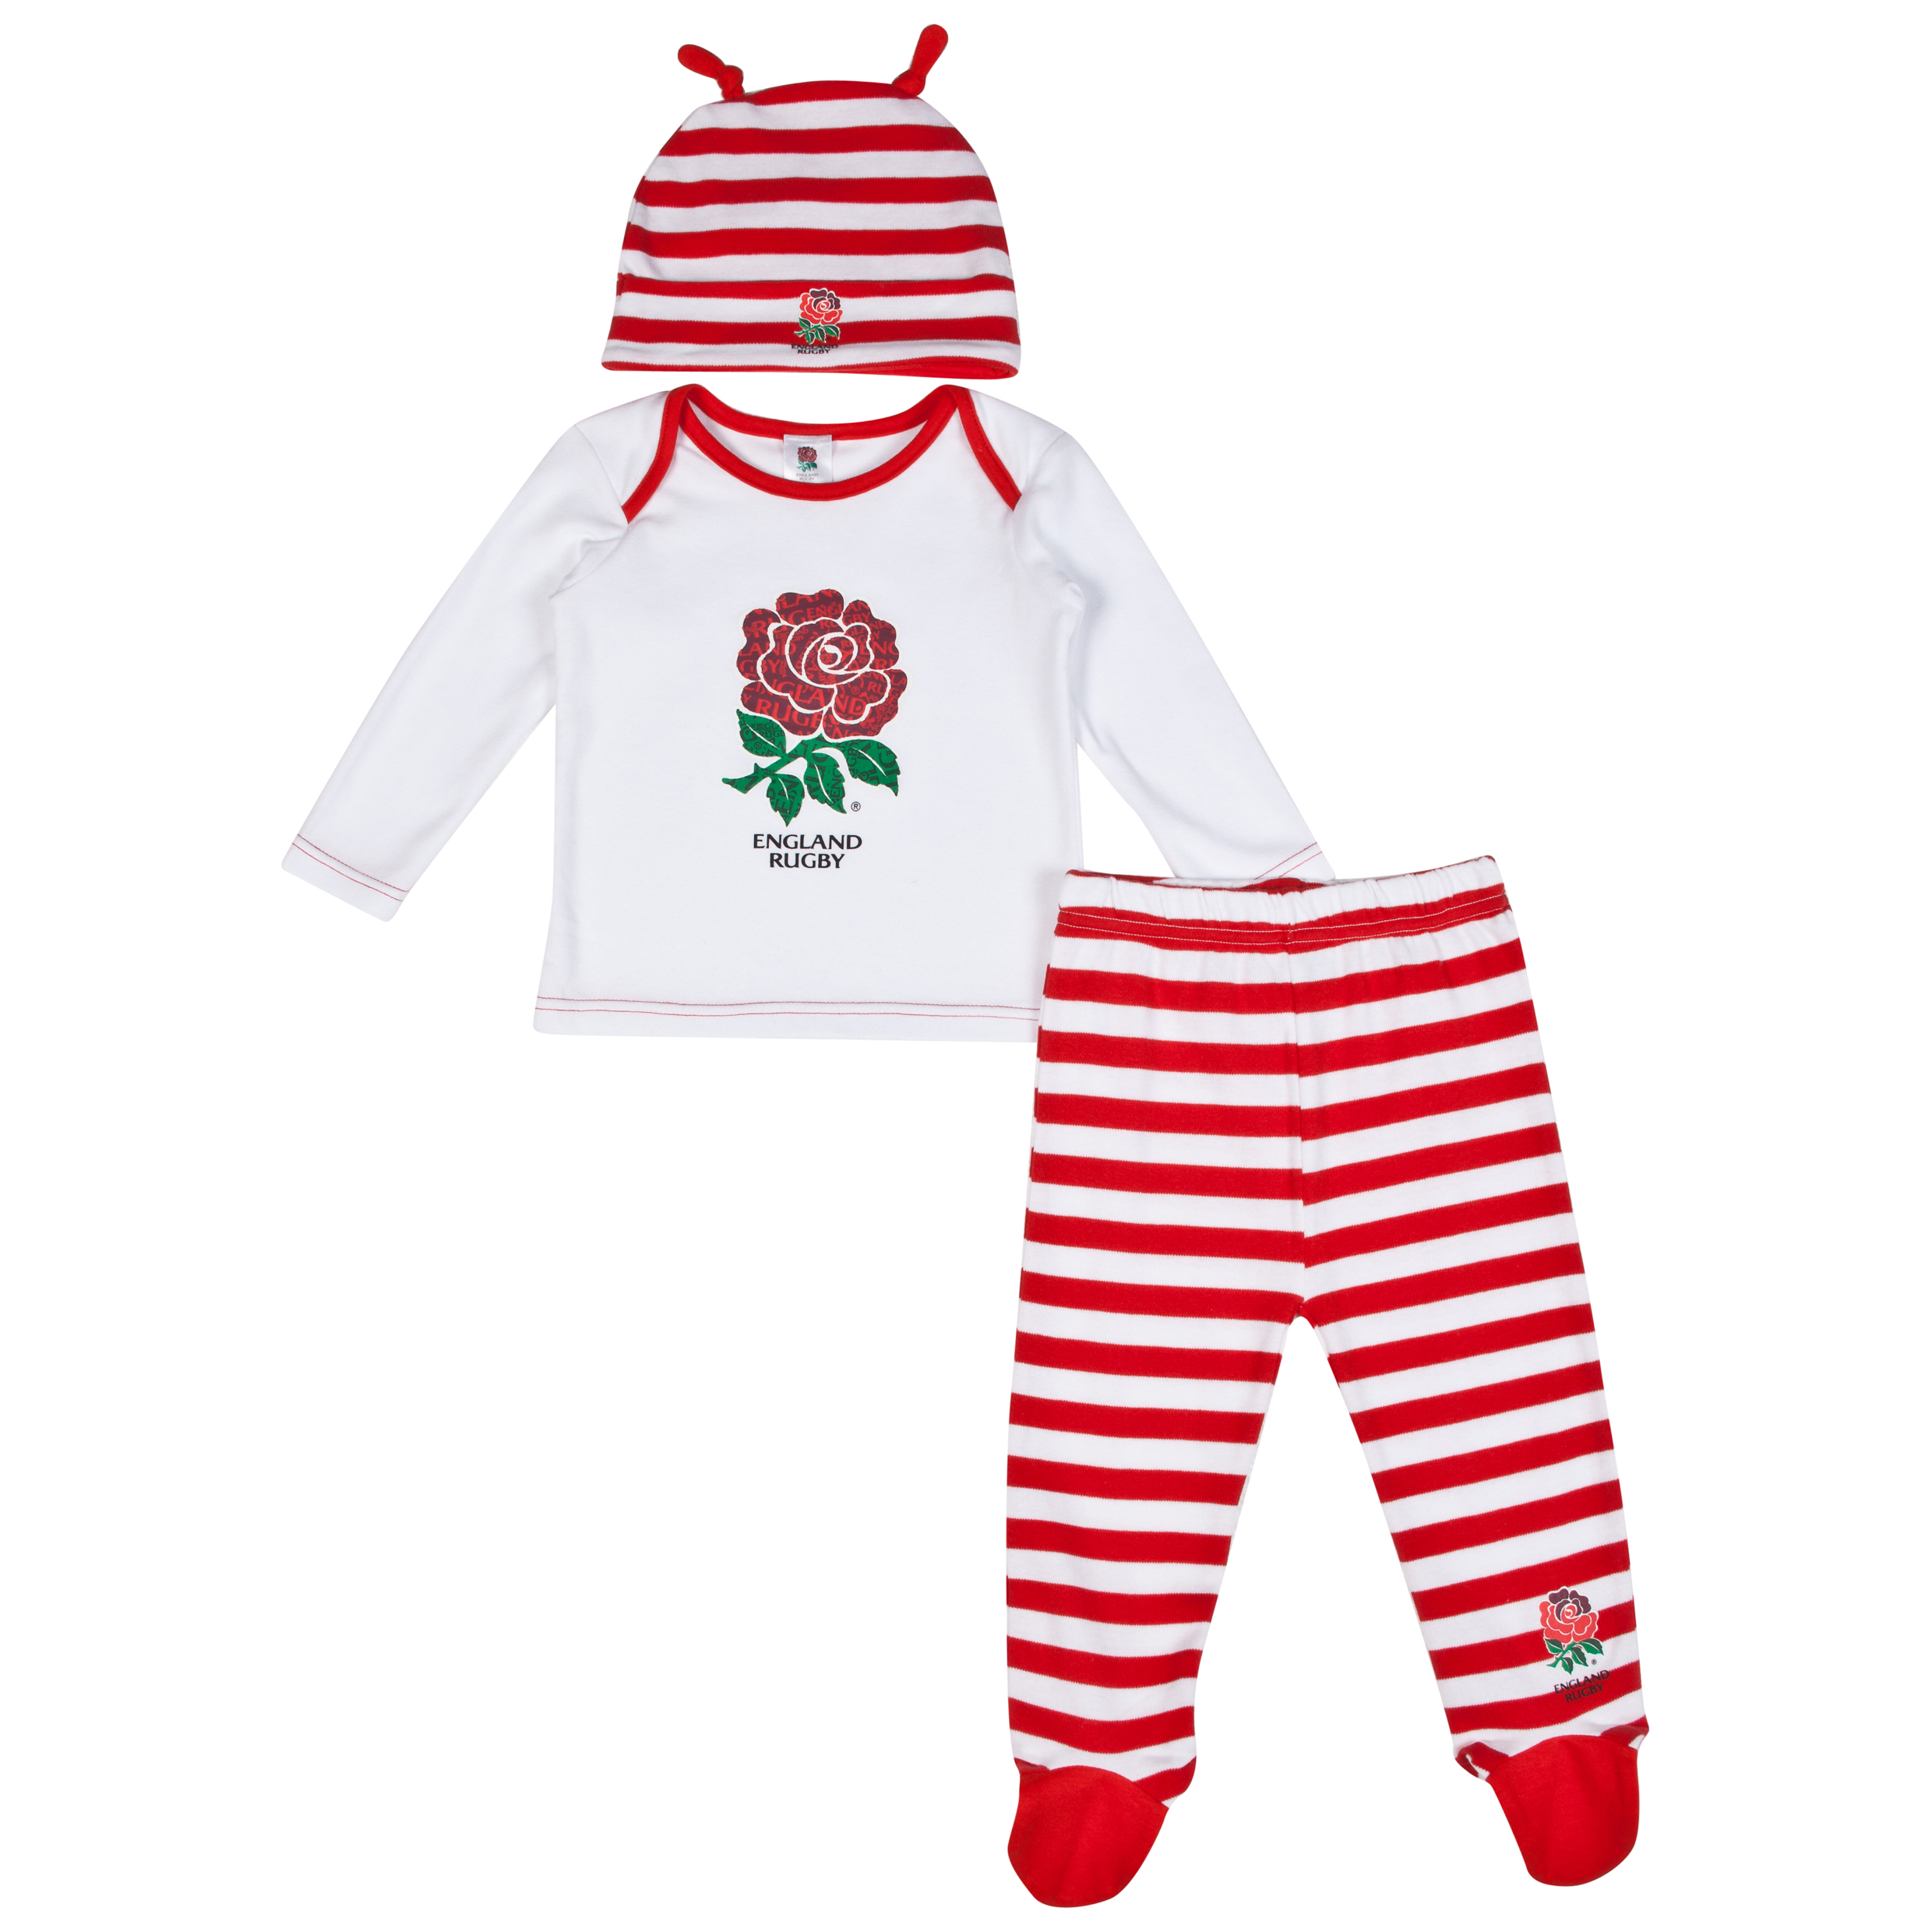 England Rugby 3 Piece Baby Set White